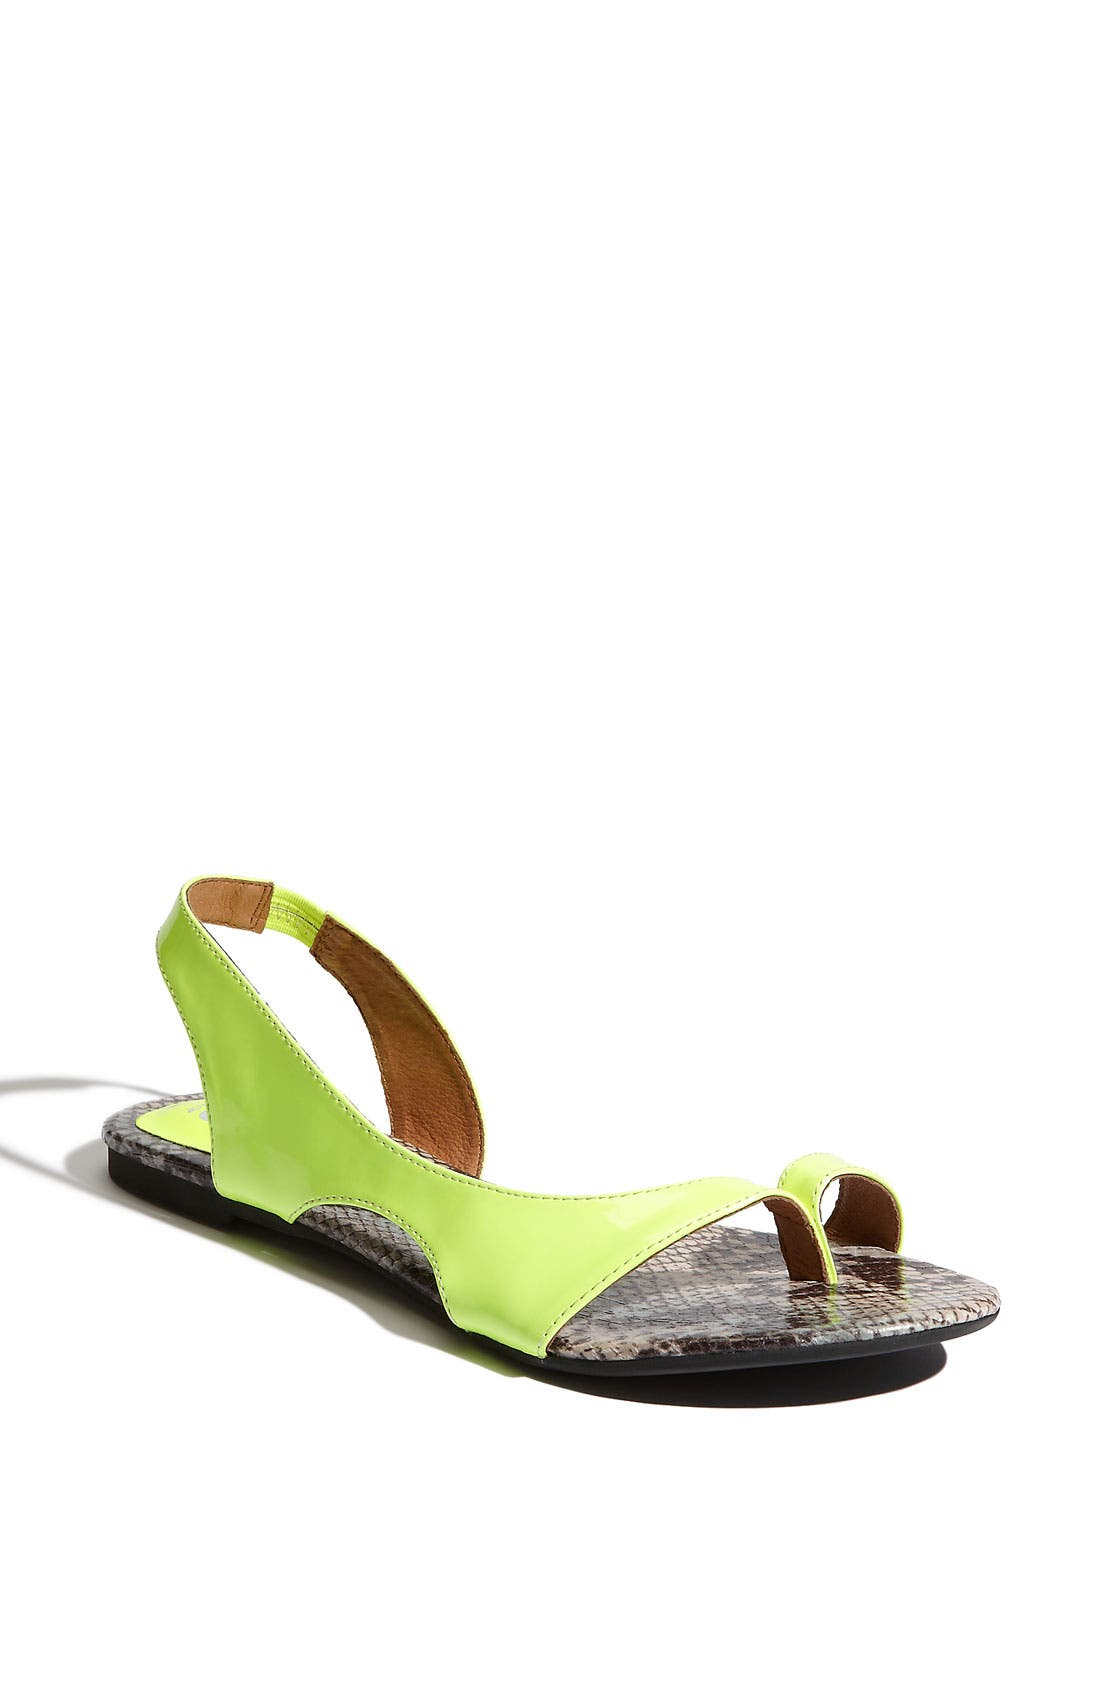 Alternate Image 1 Selected - Jeffrey Campbell 'Eddy' Sandal